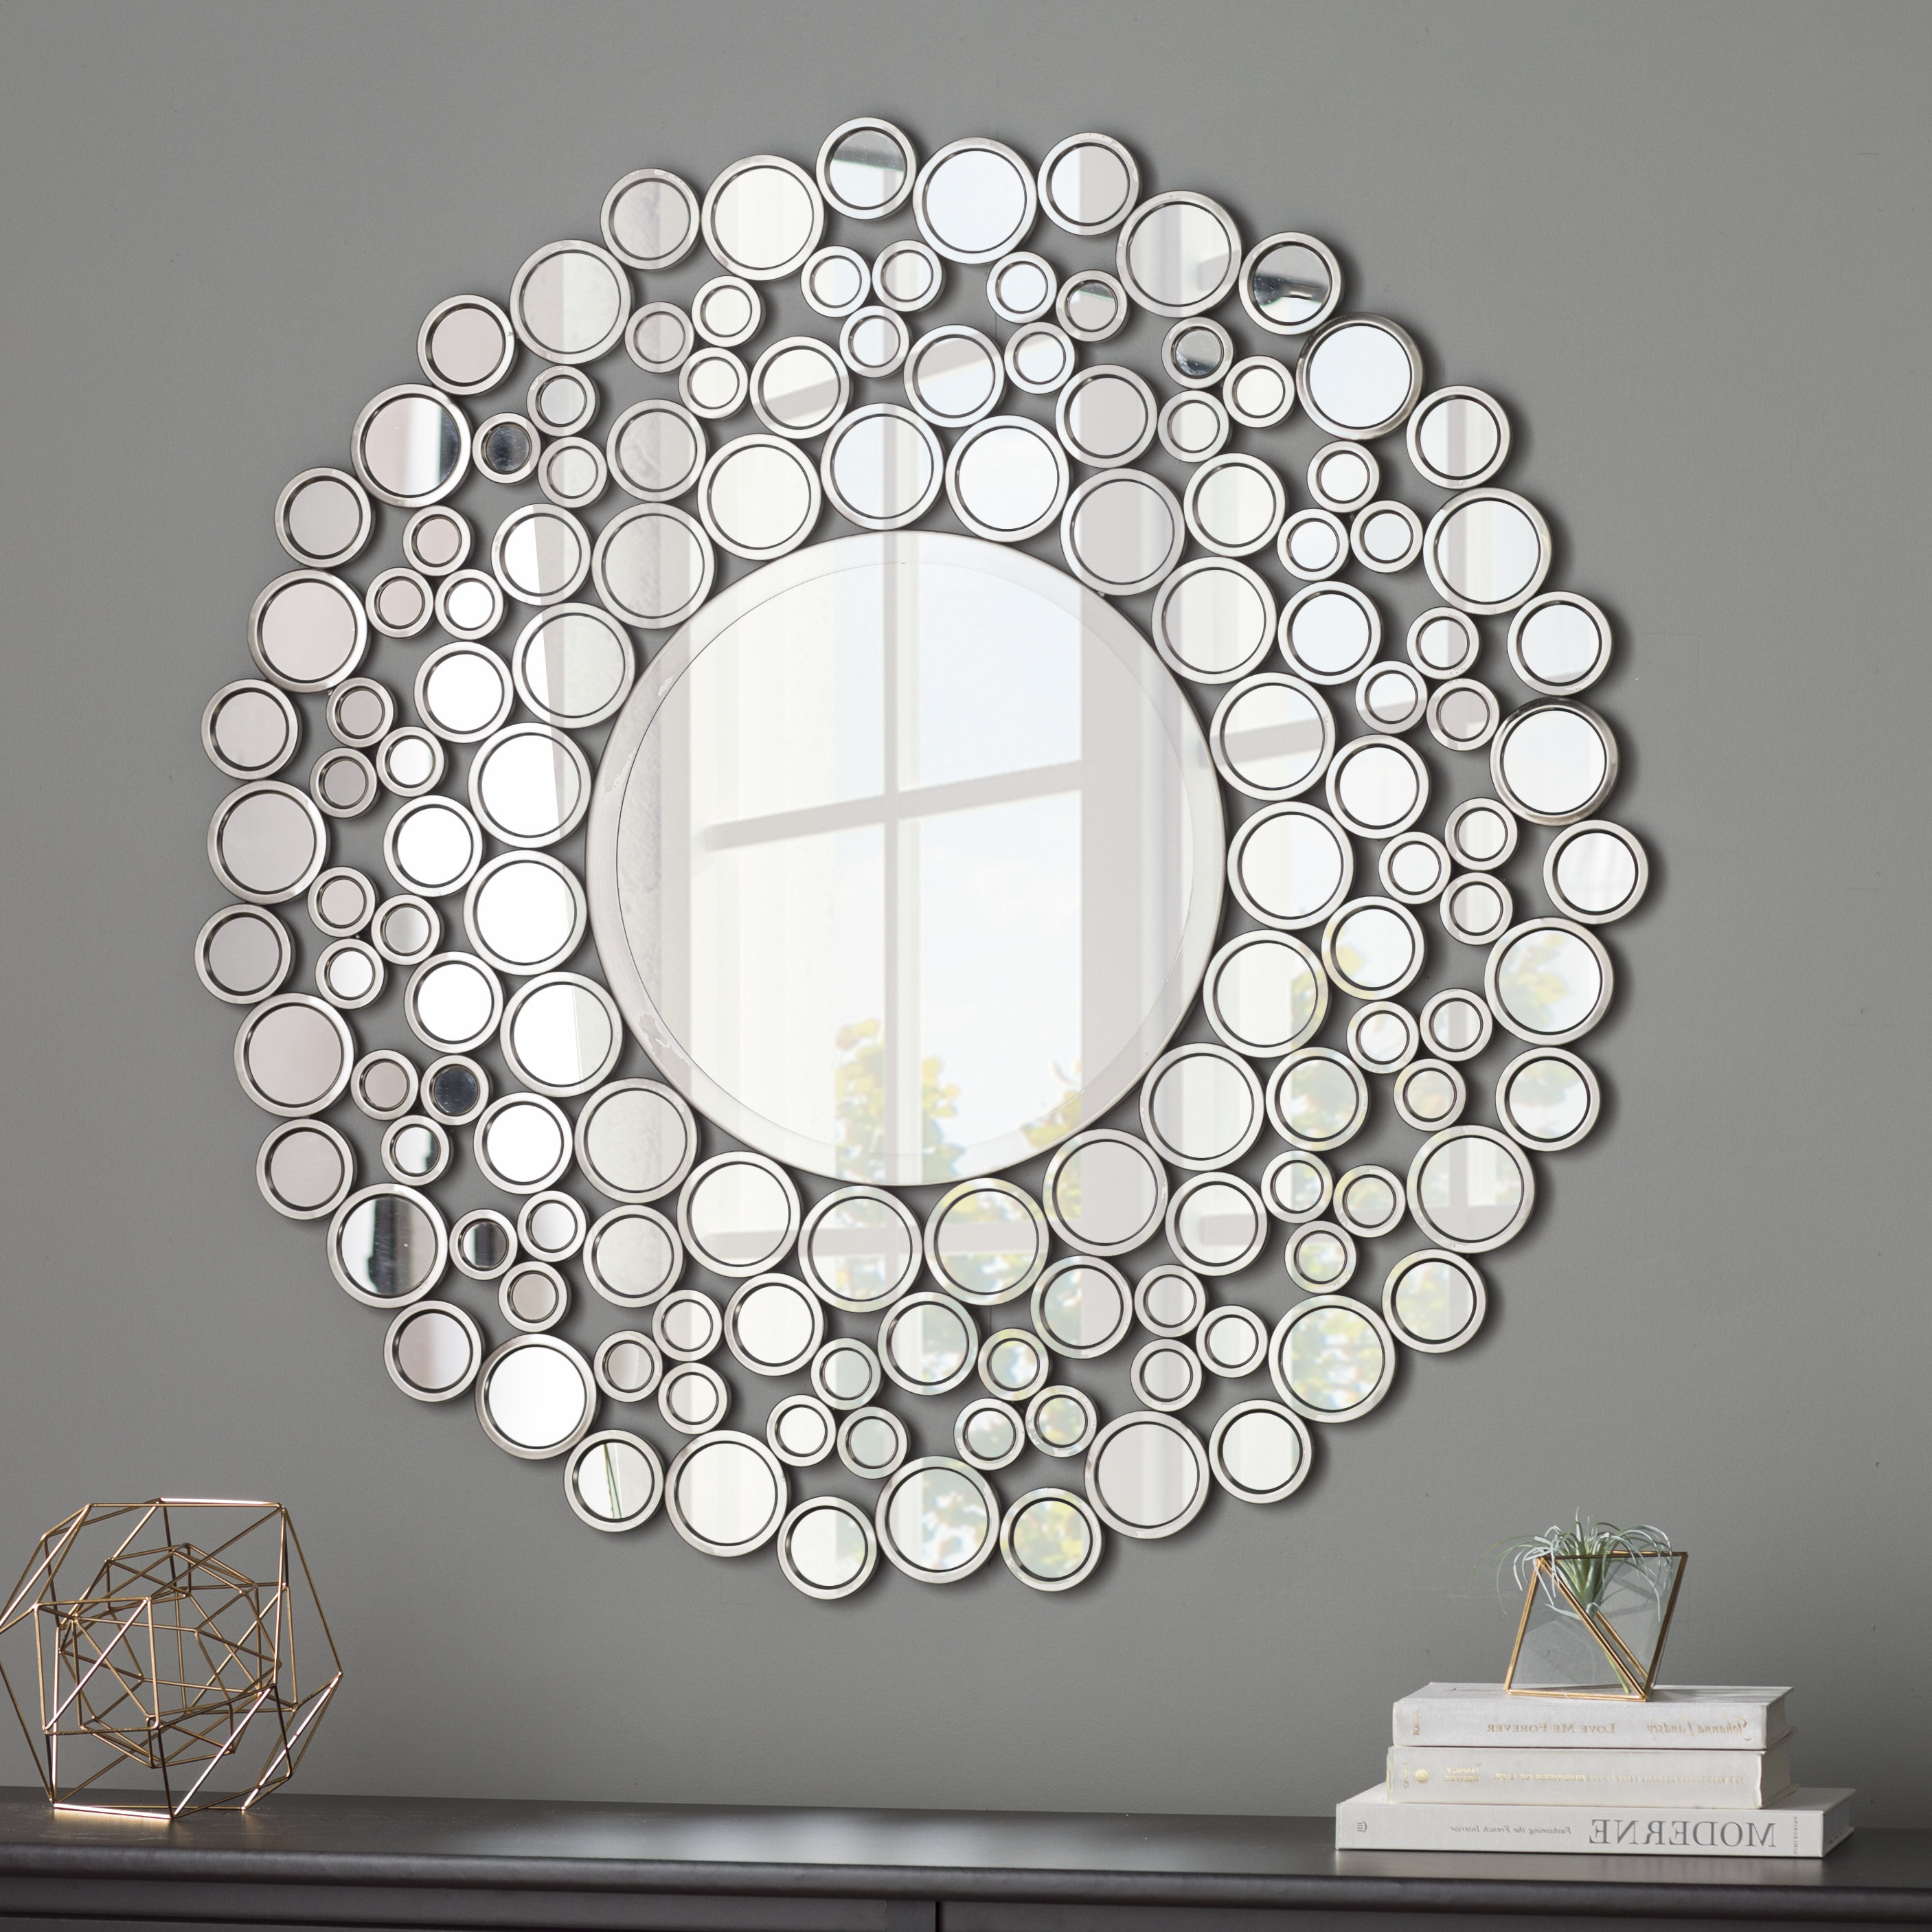 Widely Used Kentwood Round Wall Mirror For Circular Wall Mirrors (View 2 of 20)